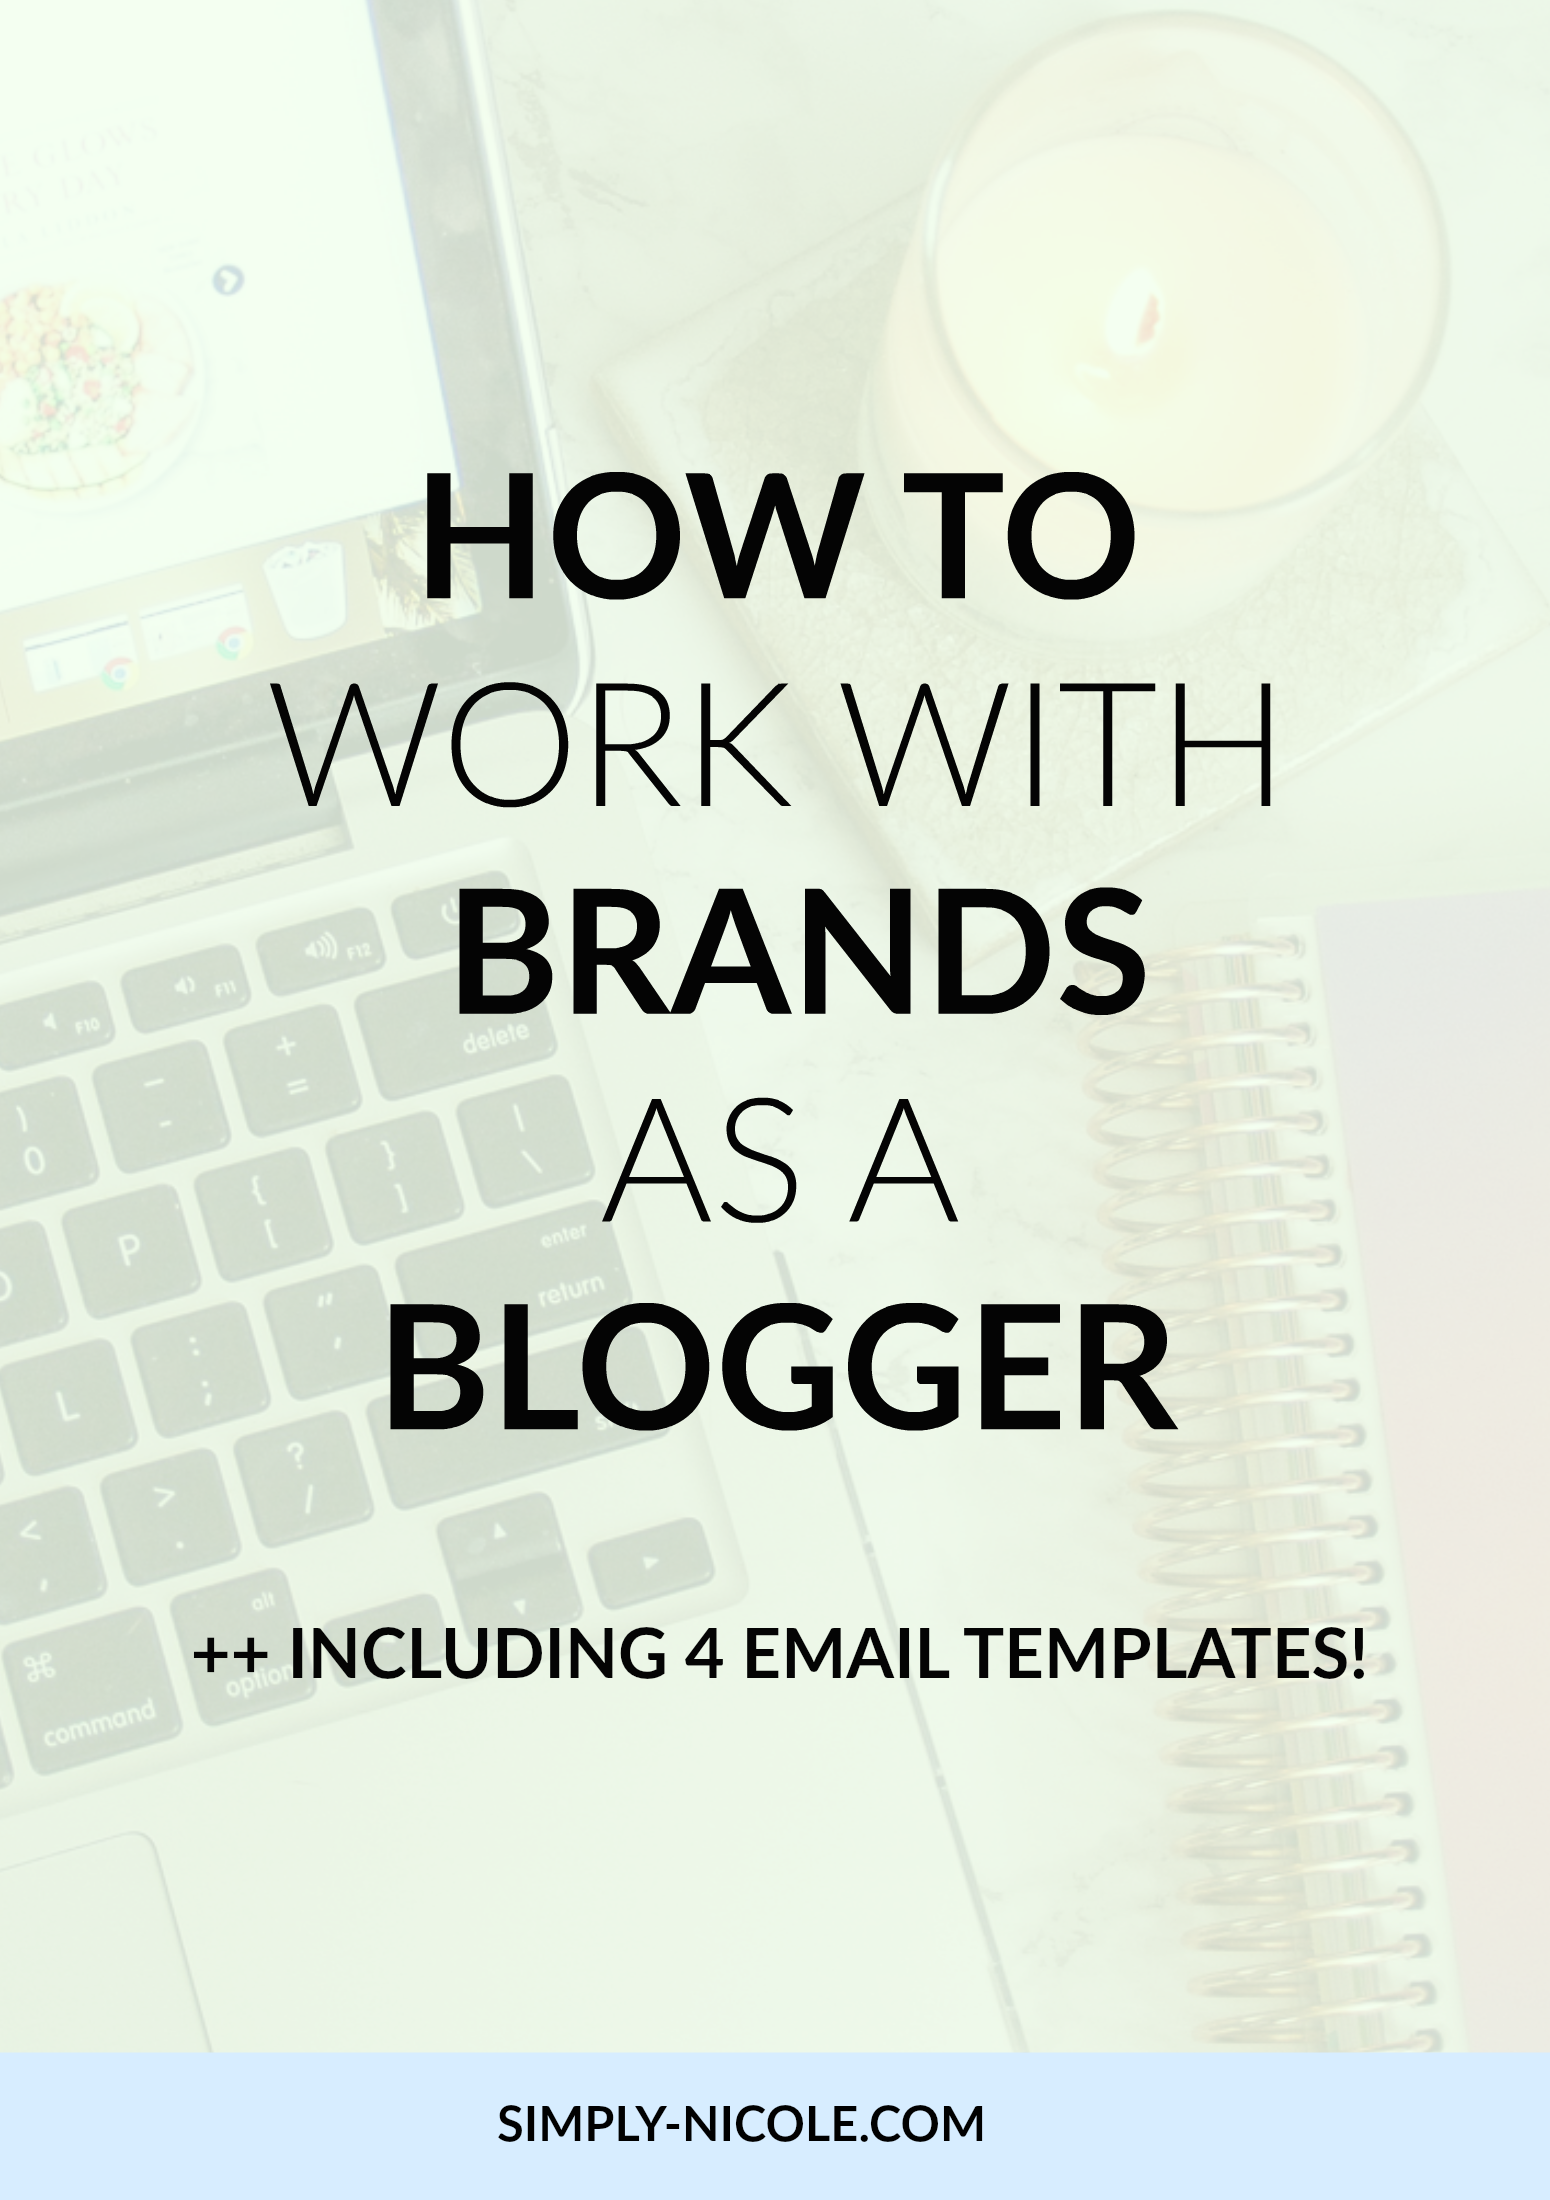 How to work with brands as a blogger via simply-nicole.com